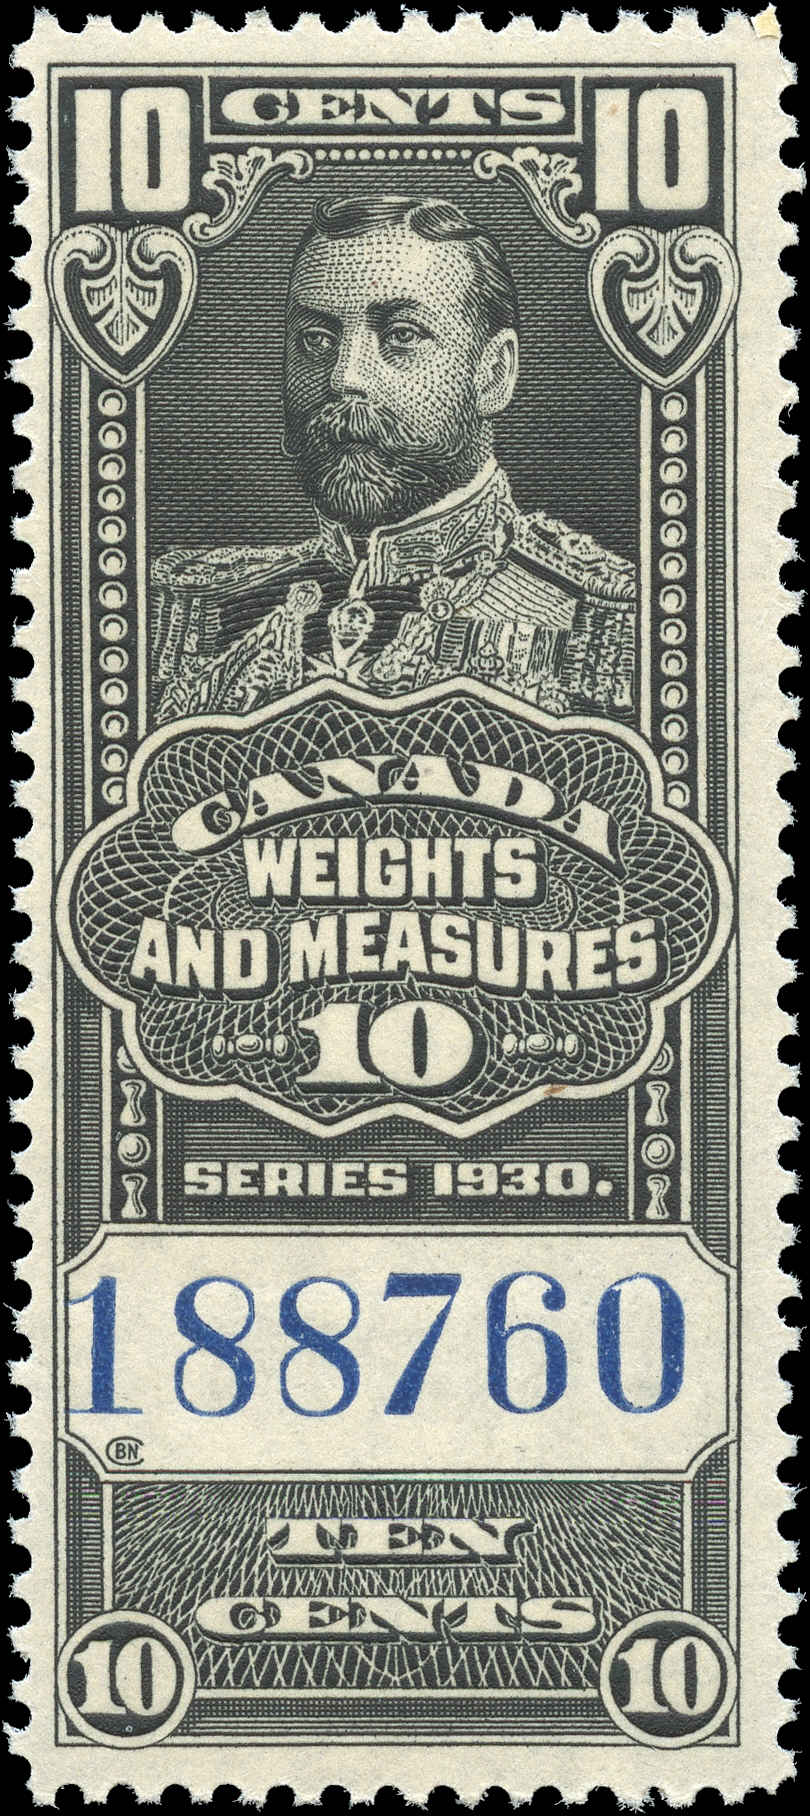 Canada #FWM61, Revenue Stamp, F+, MNH